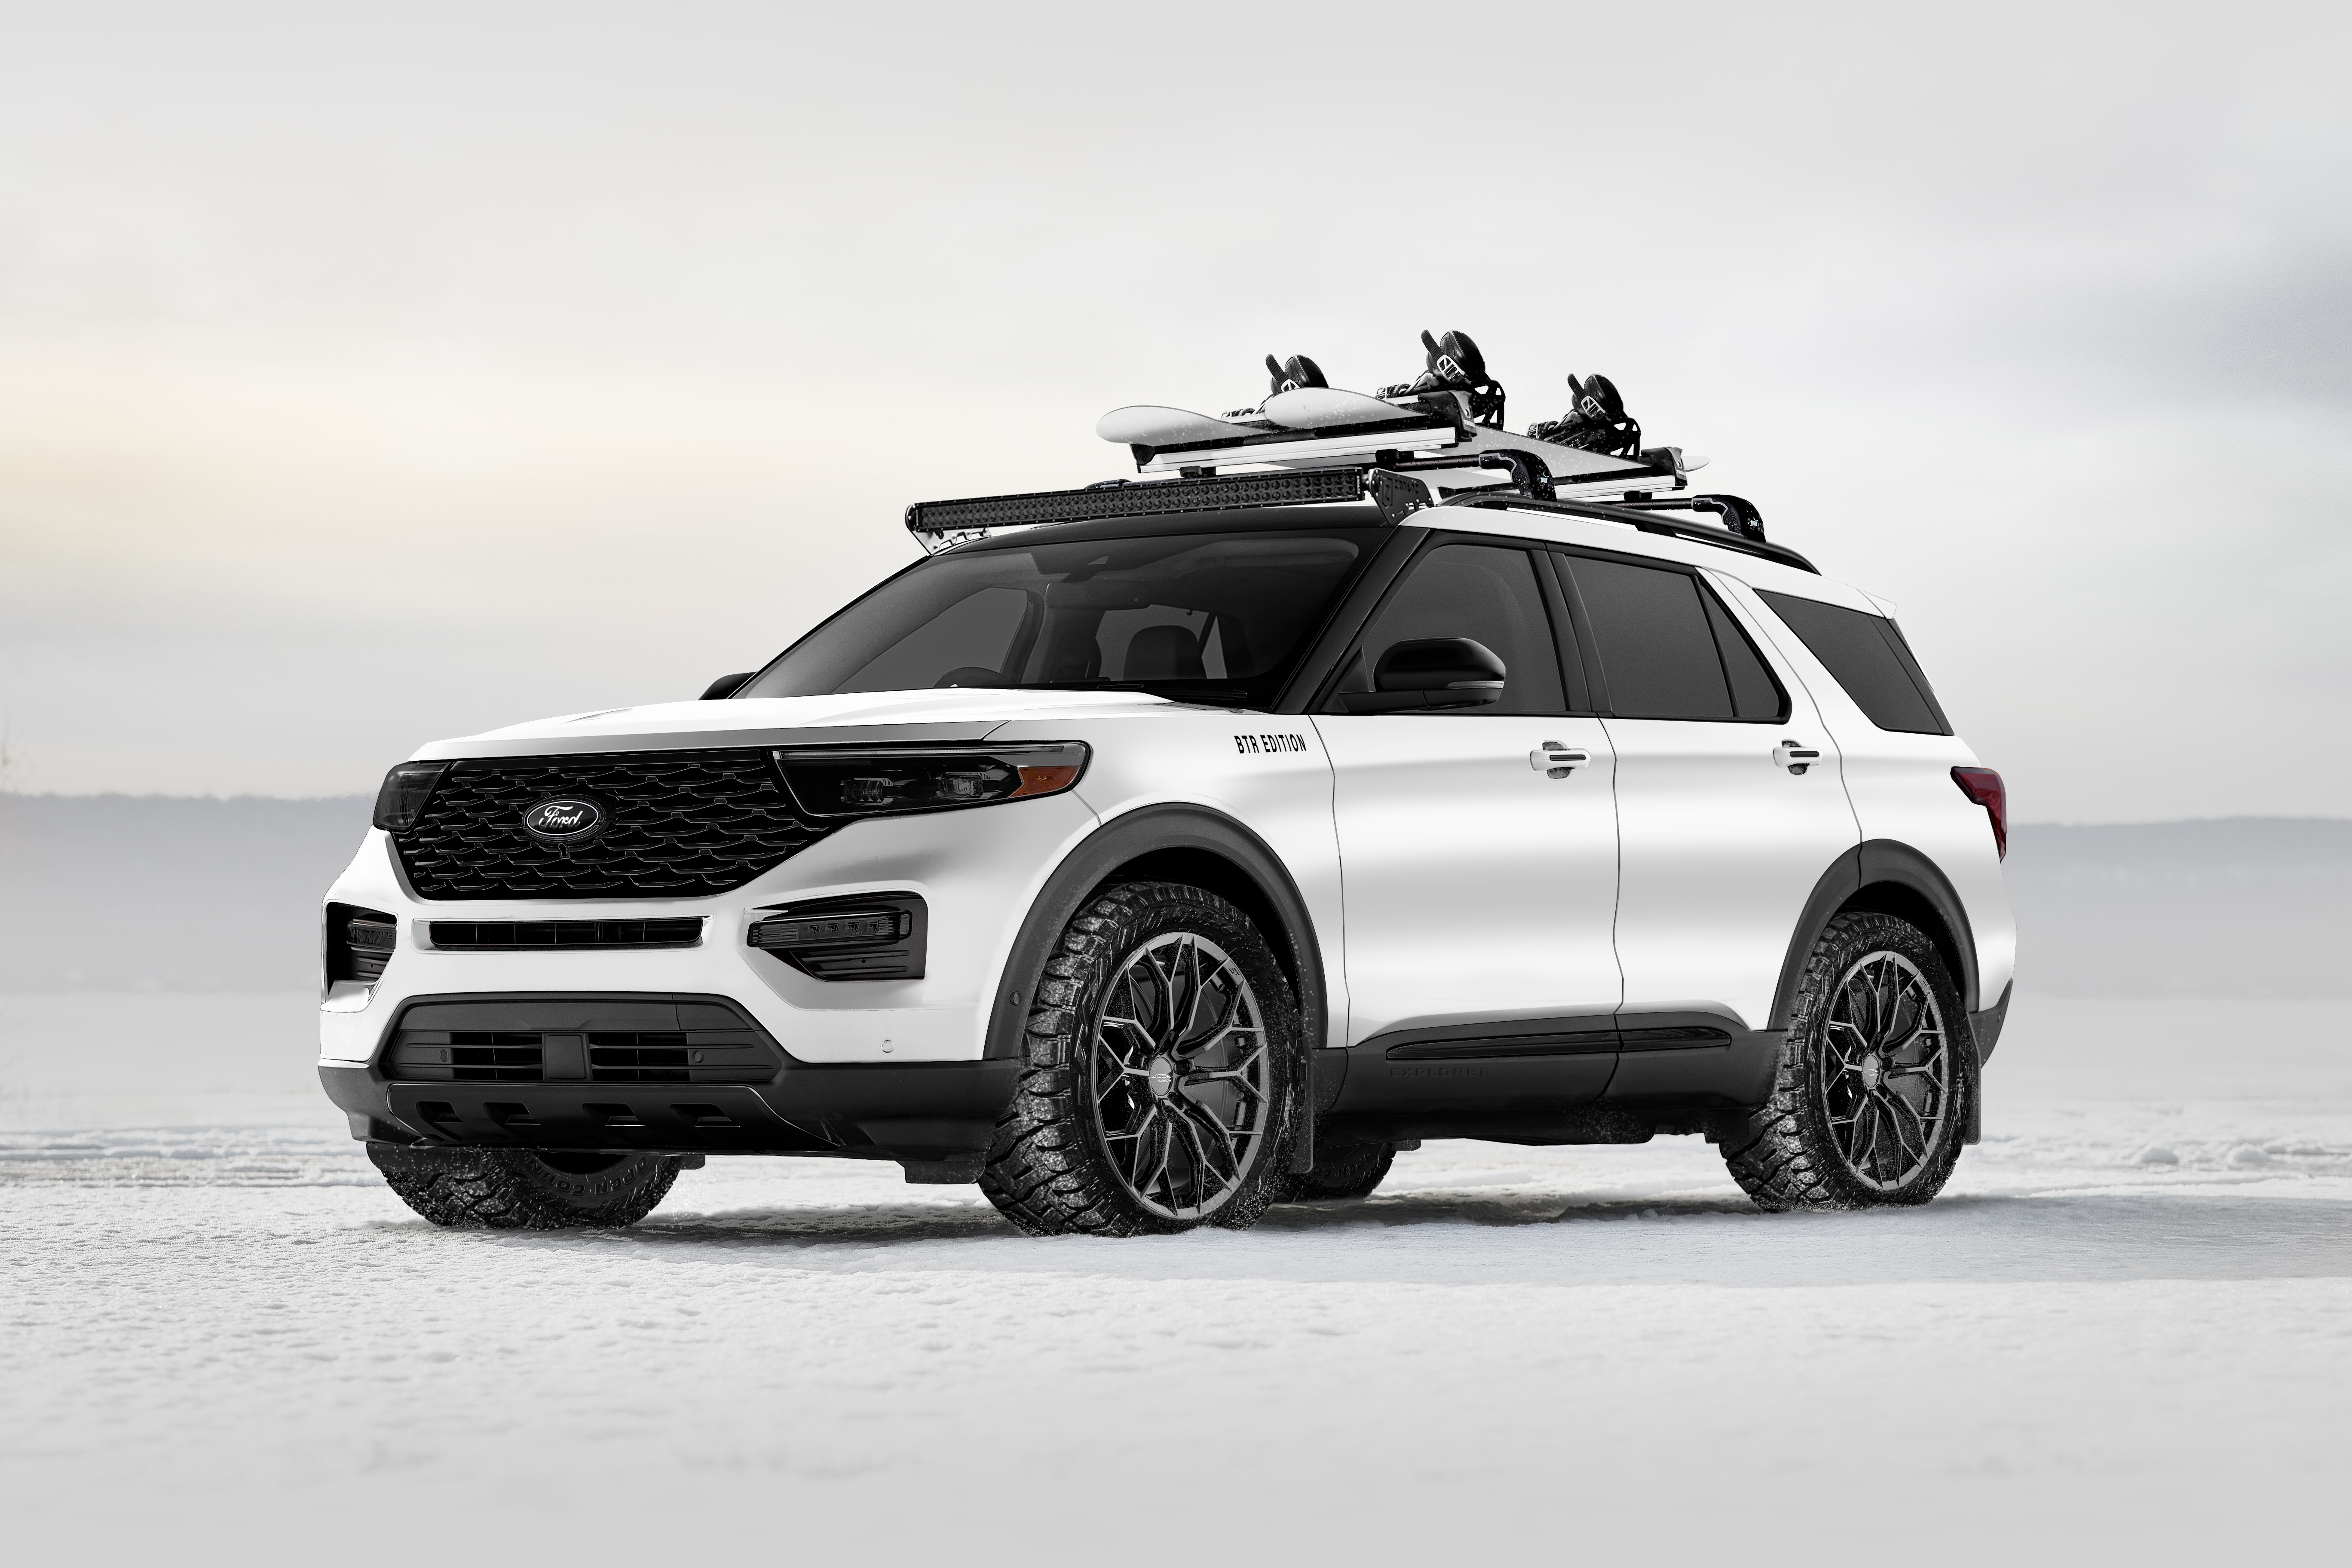 Ford S Sema Bound Suv Lineup Will Feature Portable Fridges Camping Tents And Video Cameras Top Speed